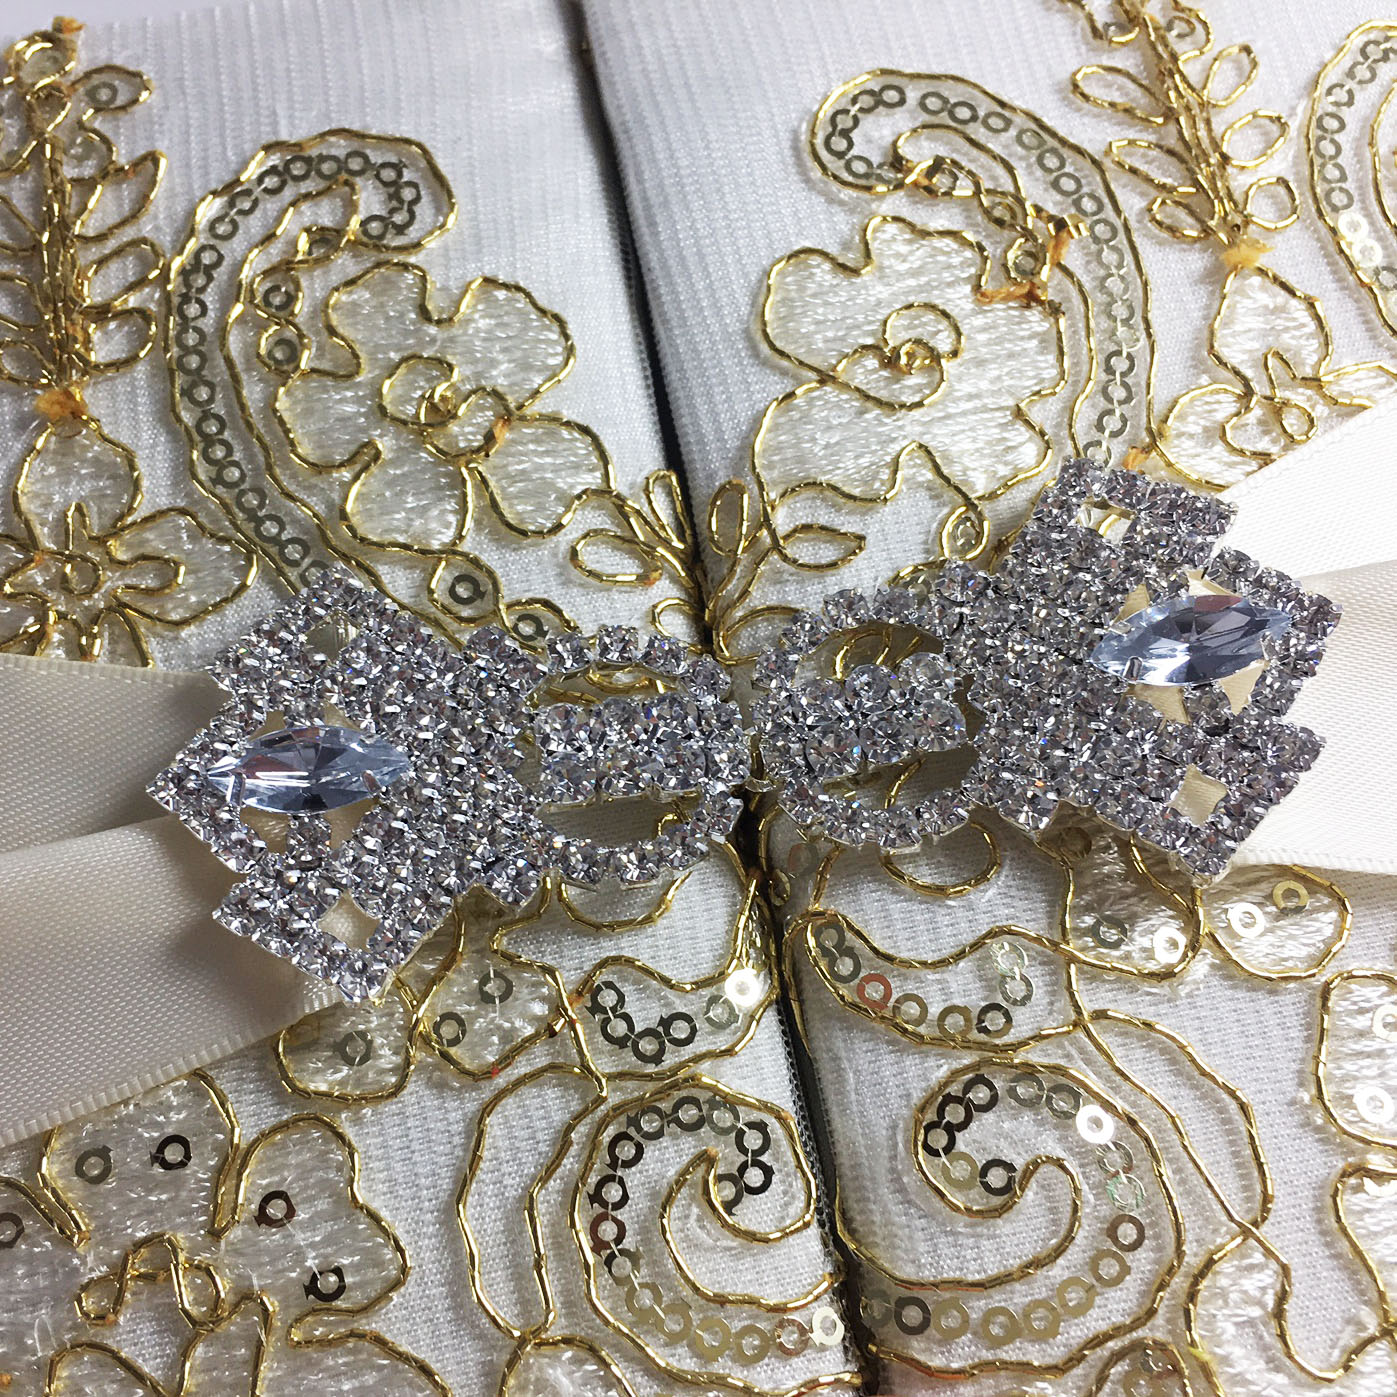 Wedding Lace Invitations: TWO DOOR POCKET FOLD INVITATION WITH DOORS AND BOW